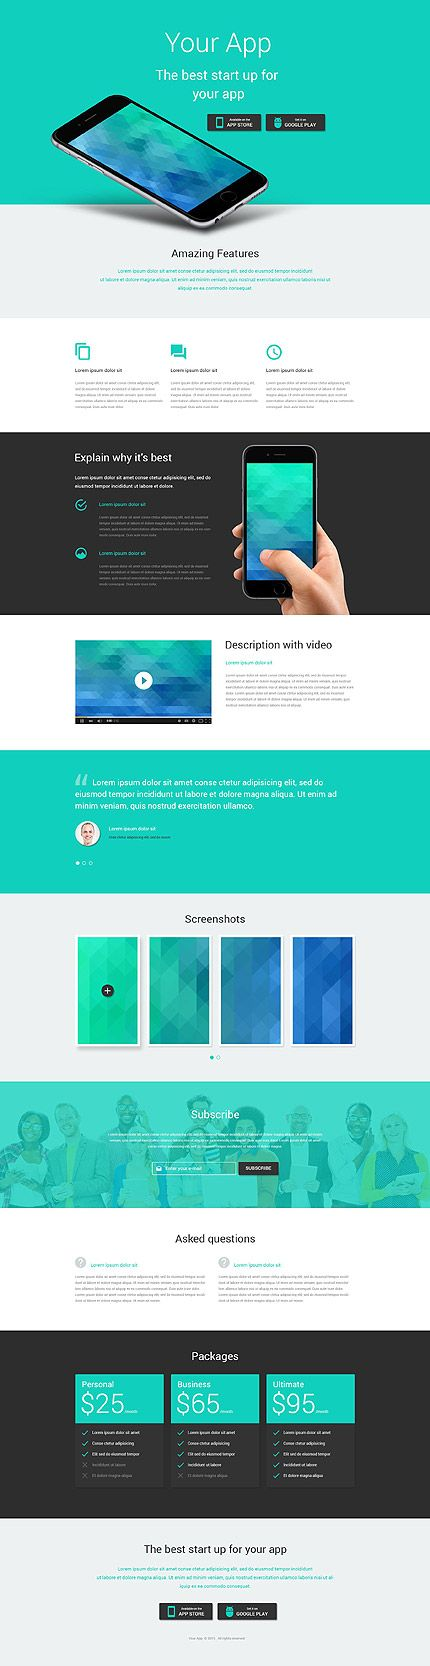 76 best Landing Page Templates images on Pinterest | Landing pages ...